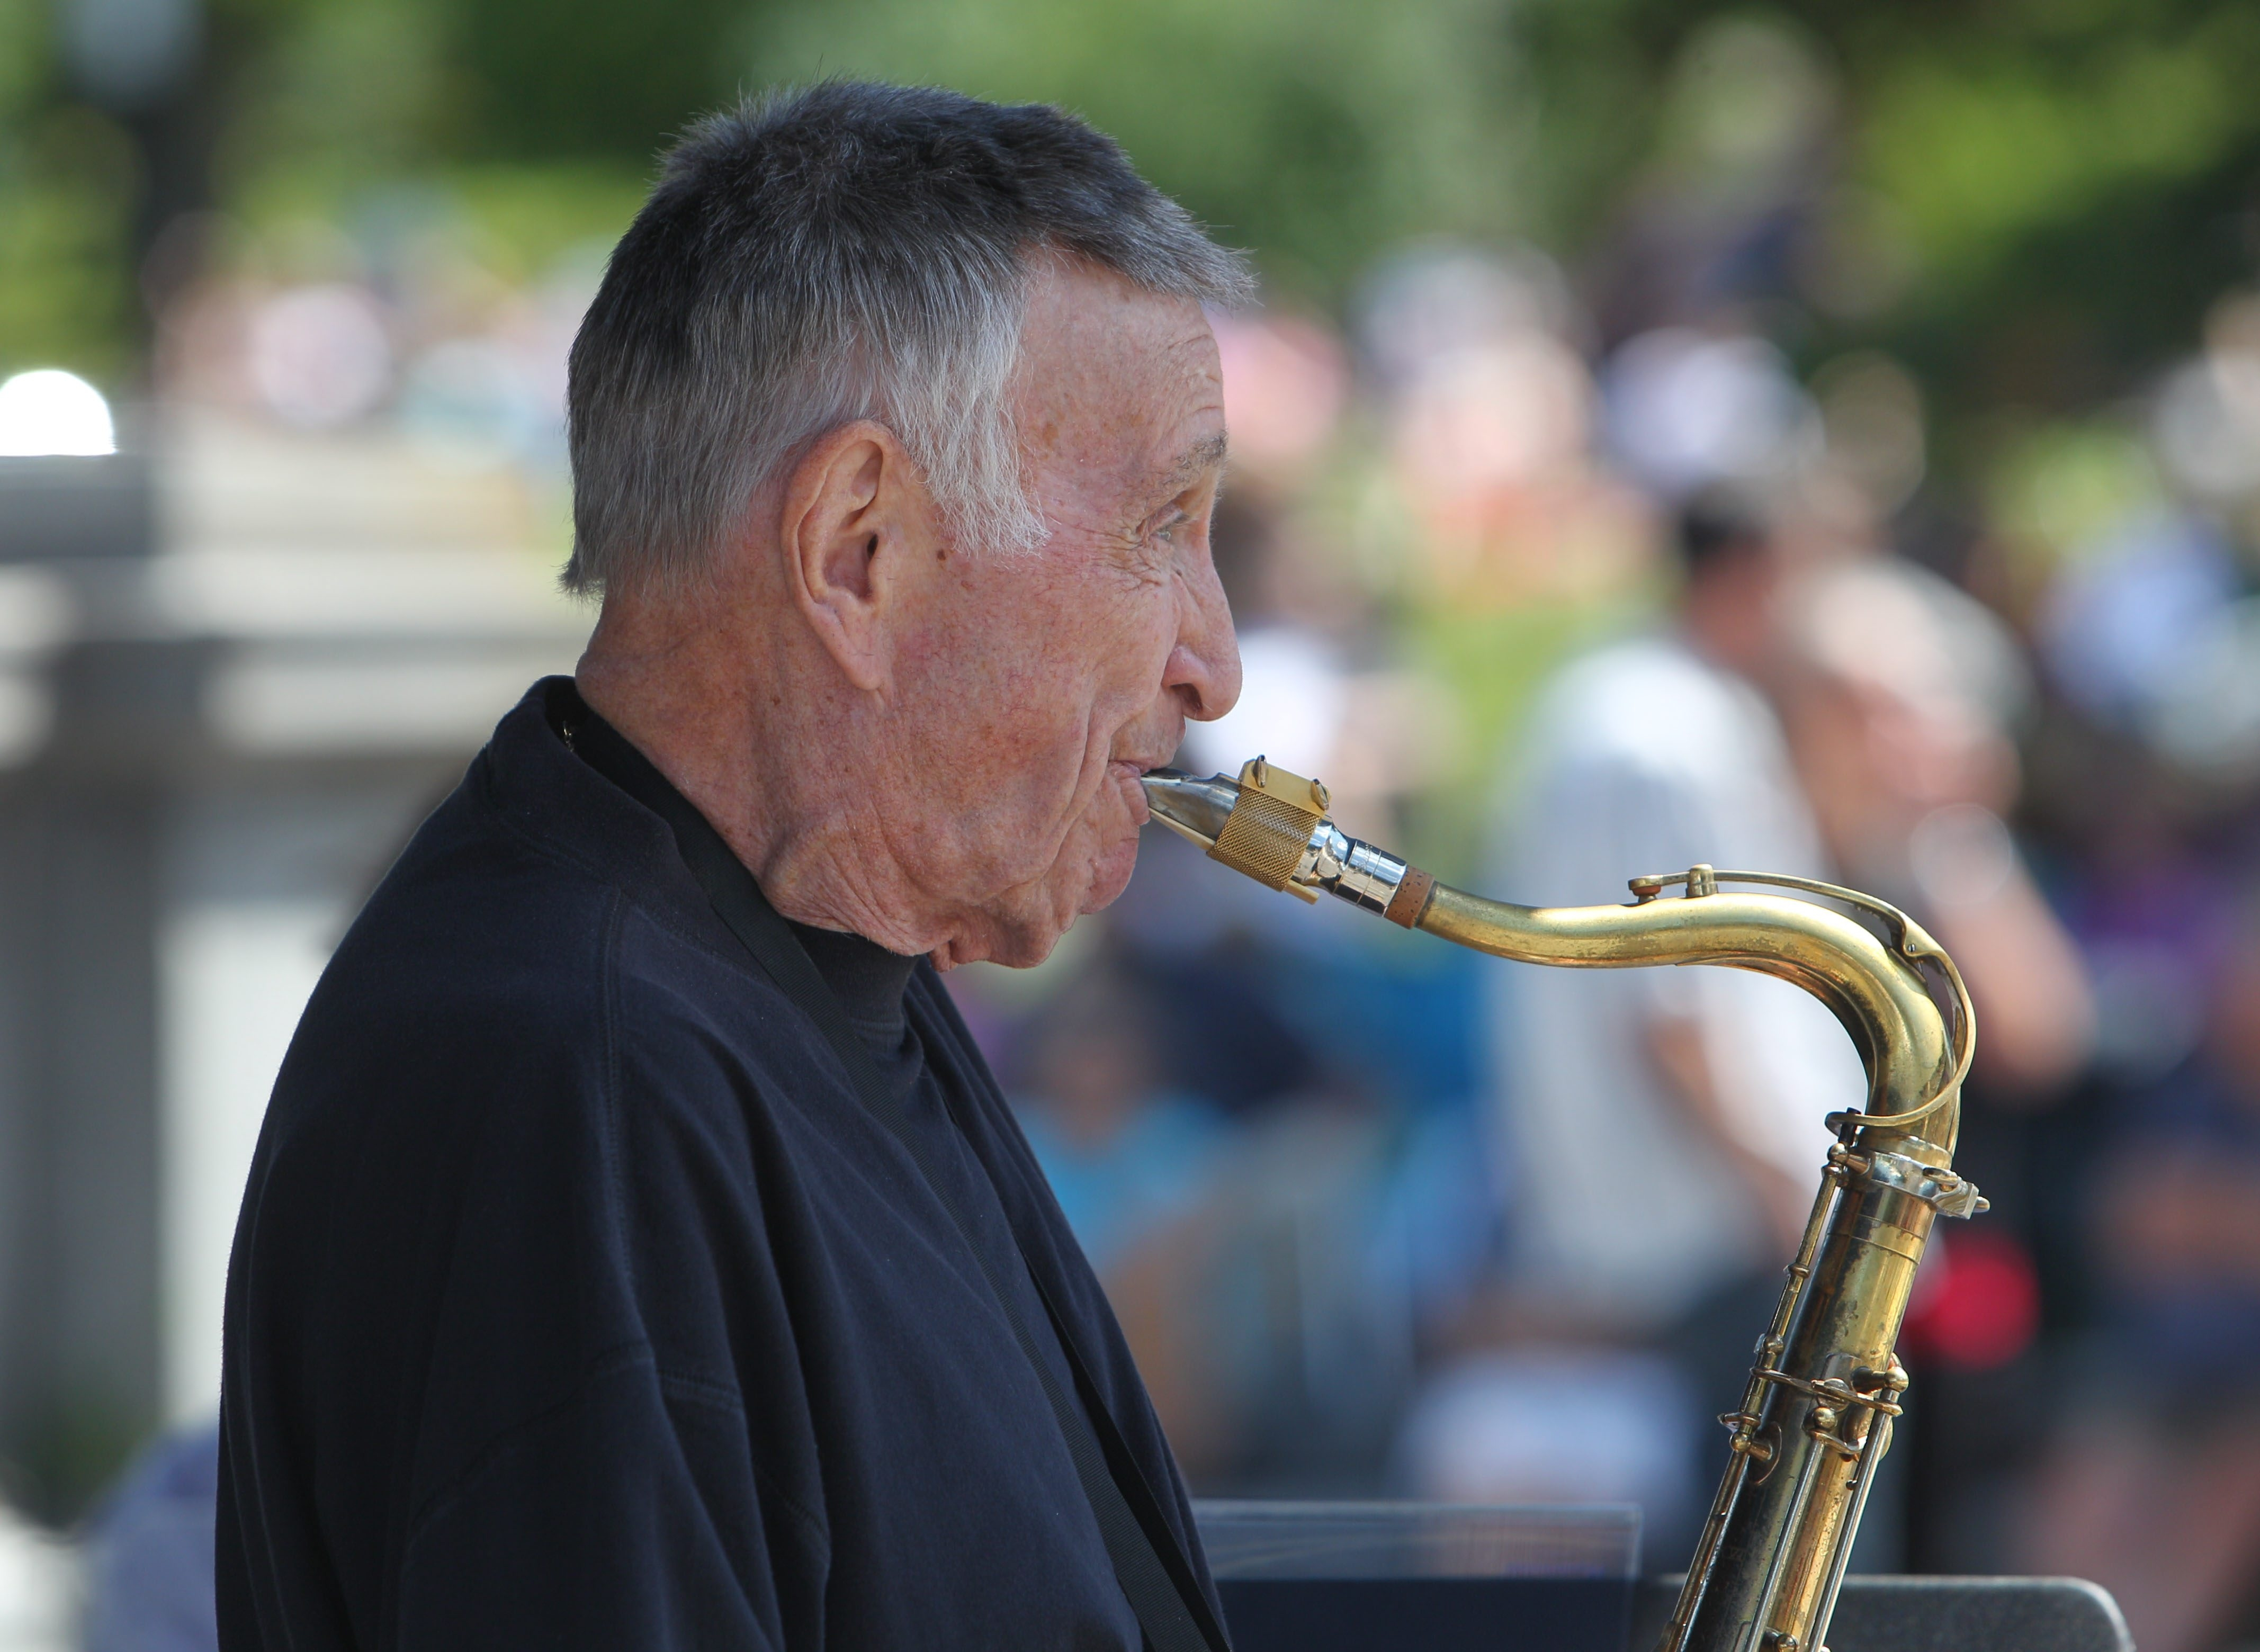 Don Rice, the saxophonist who headlined the Albright-Knox Summer Jazz Series Sunday, has performed in Buffalo every summer for years, bringing his gentle sound to the gallery.